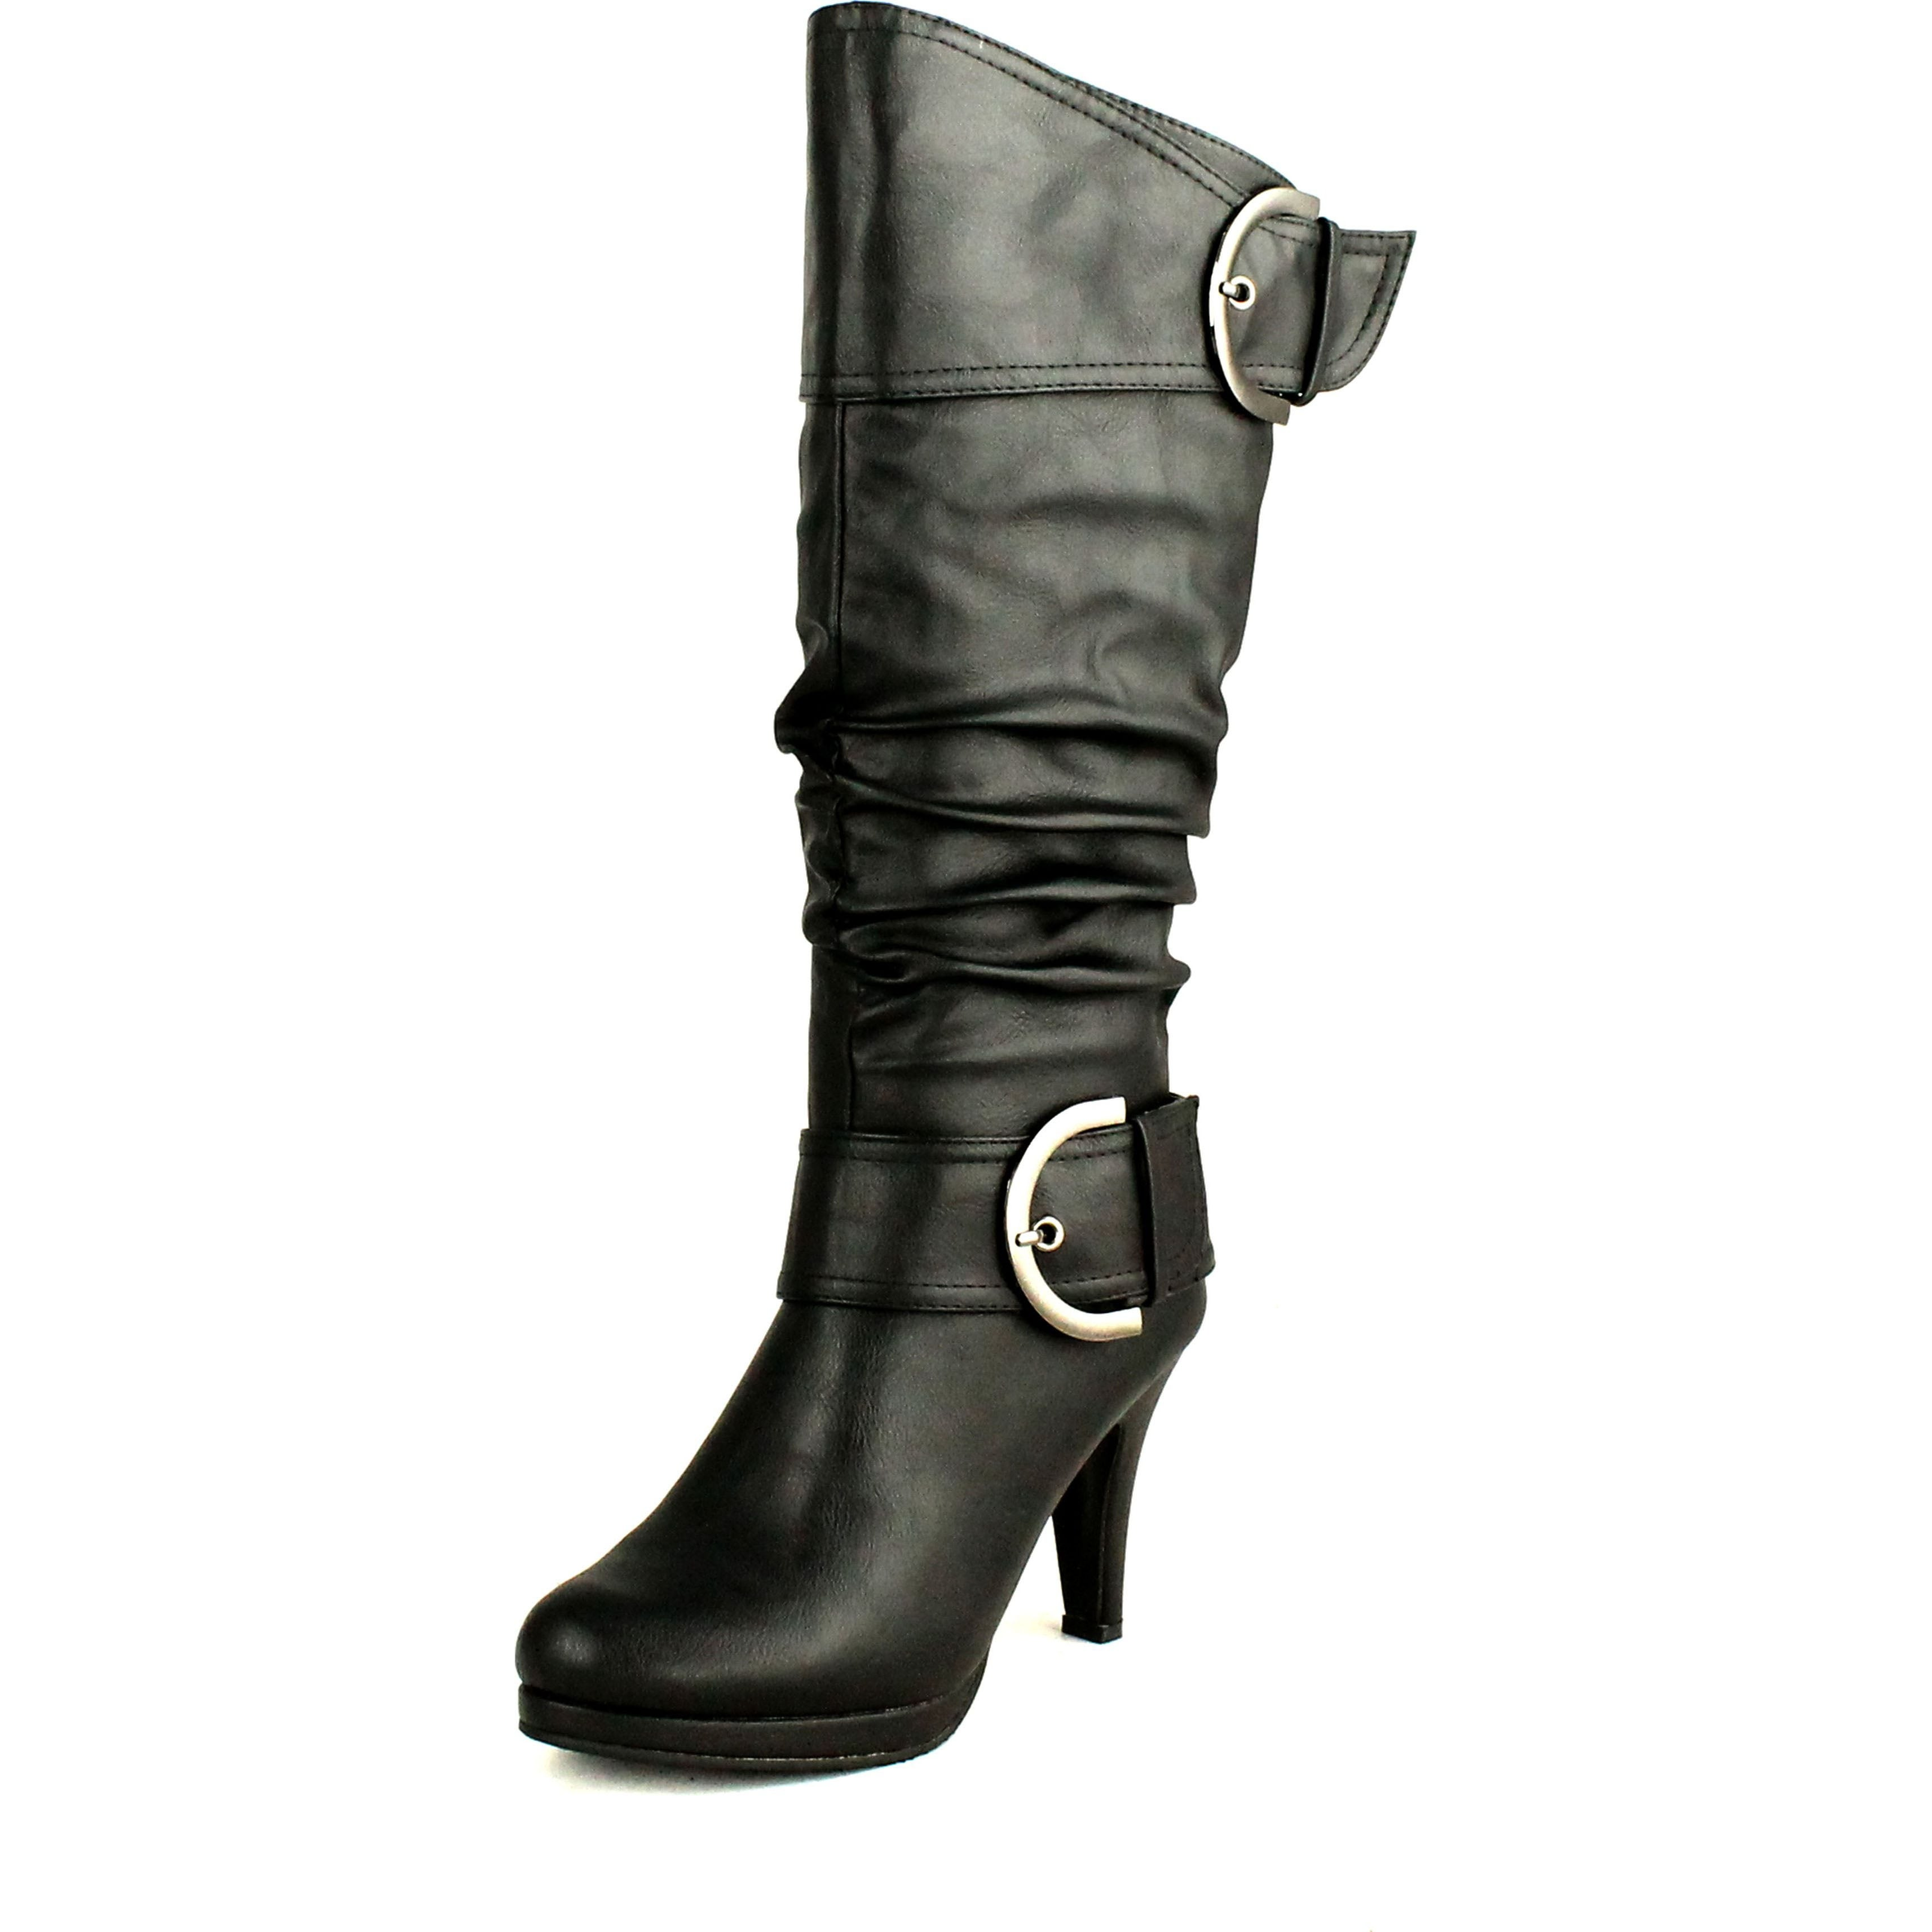 e36aab9b7b75 Buy Top Moda Women s Boots Online at Overstock